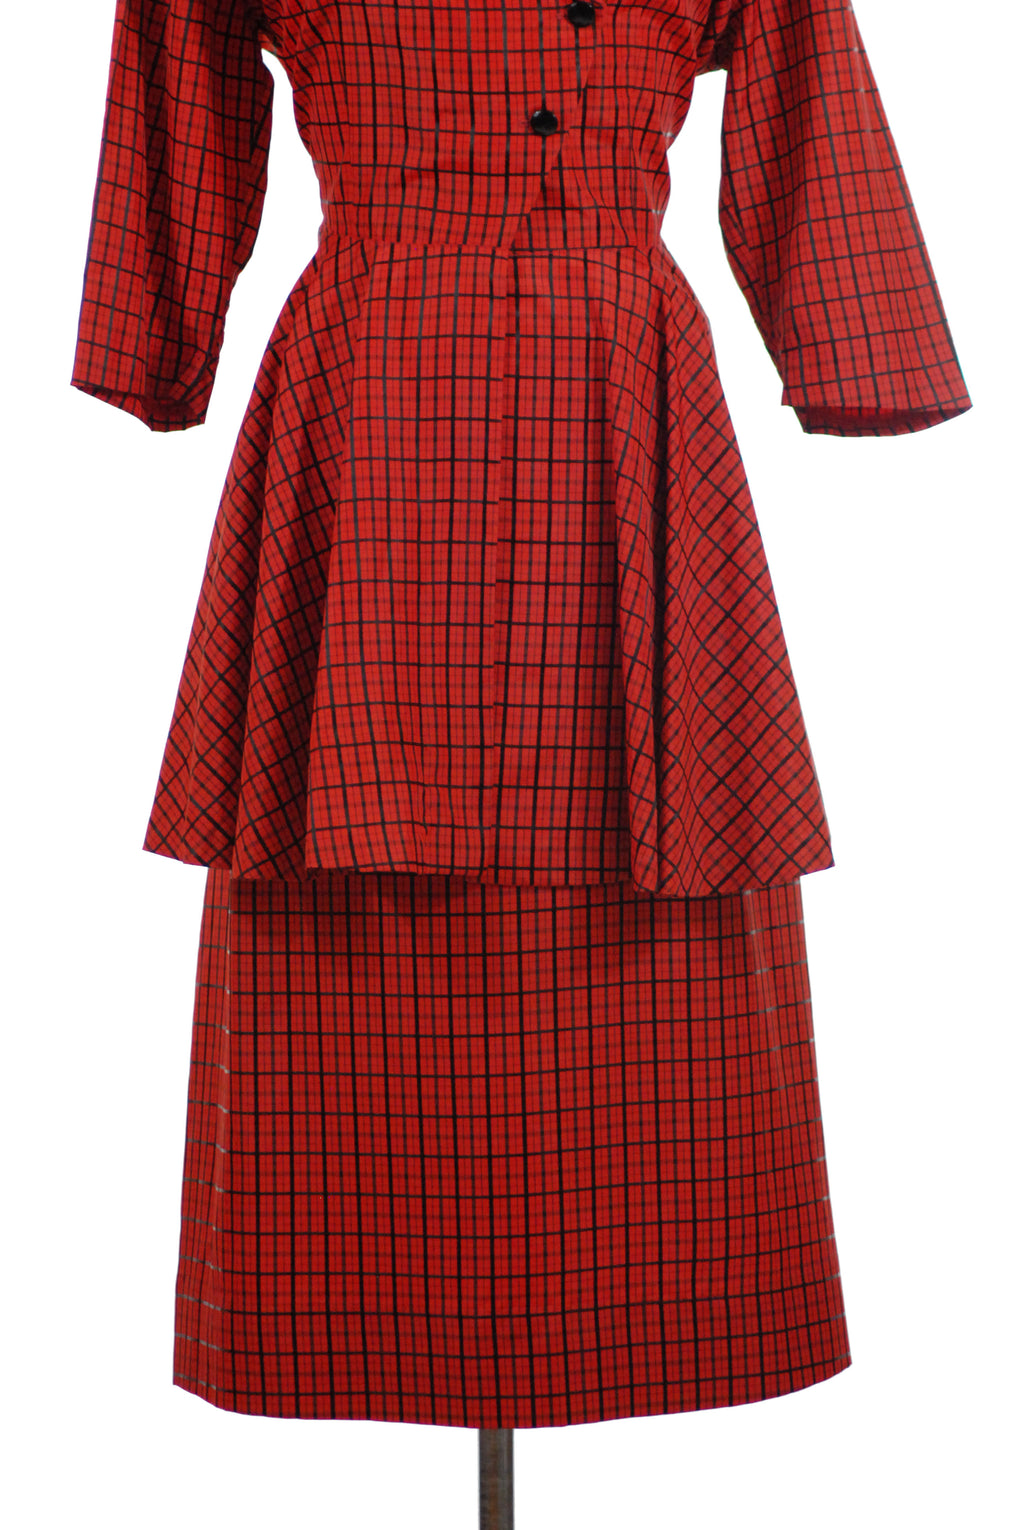 Smart 1950s Peplum Suit in Bright Red with Black Plaid